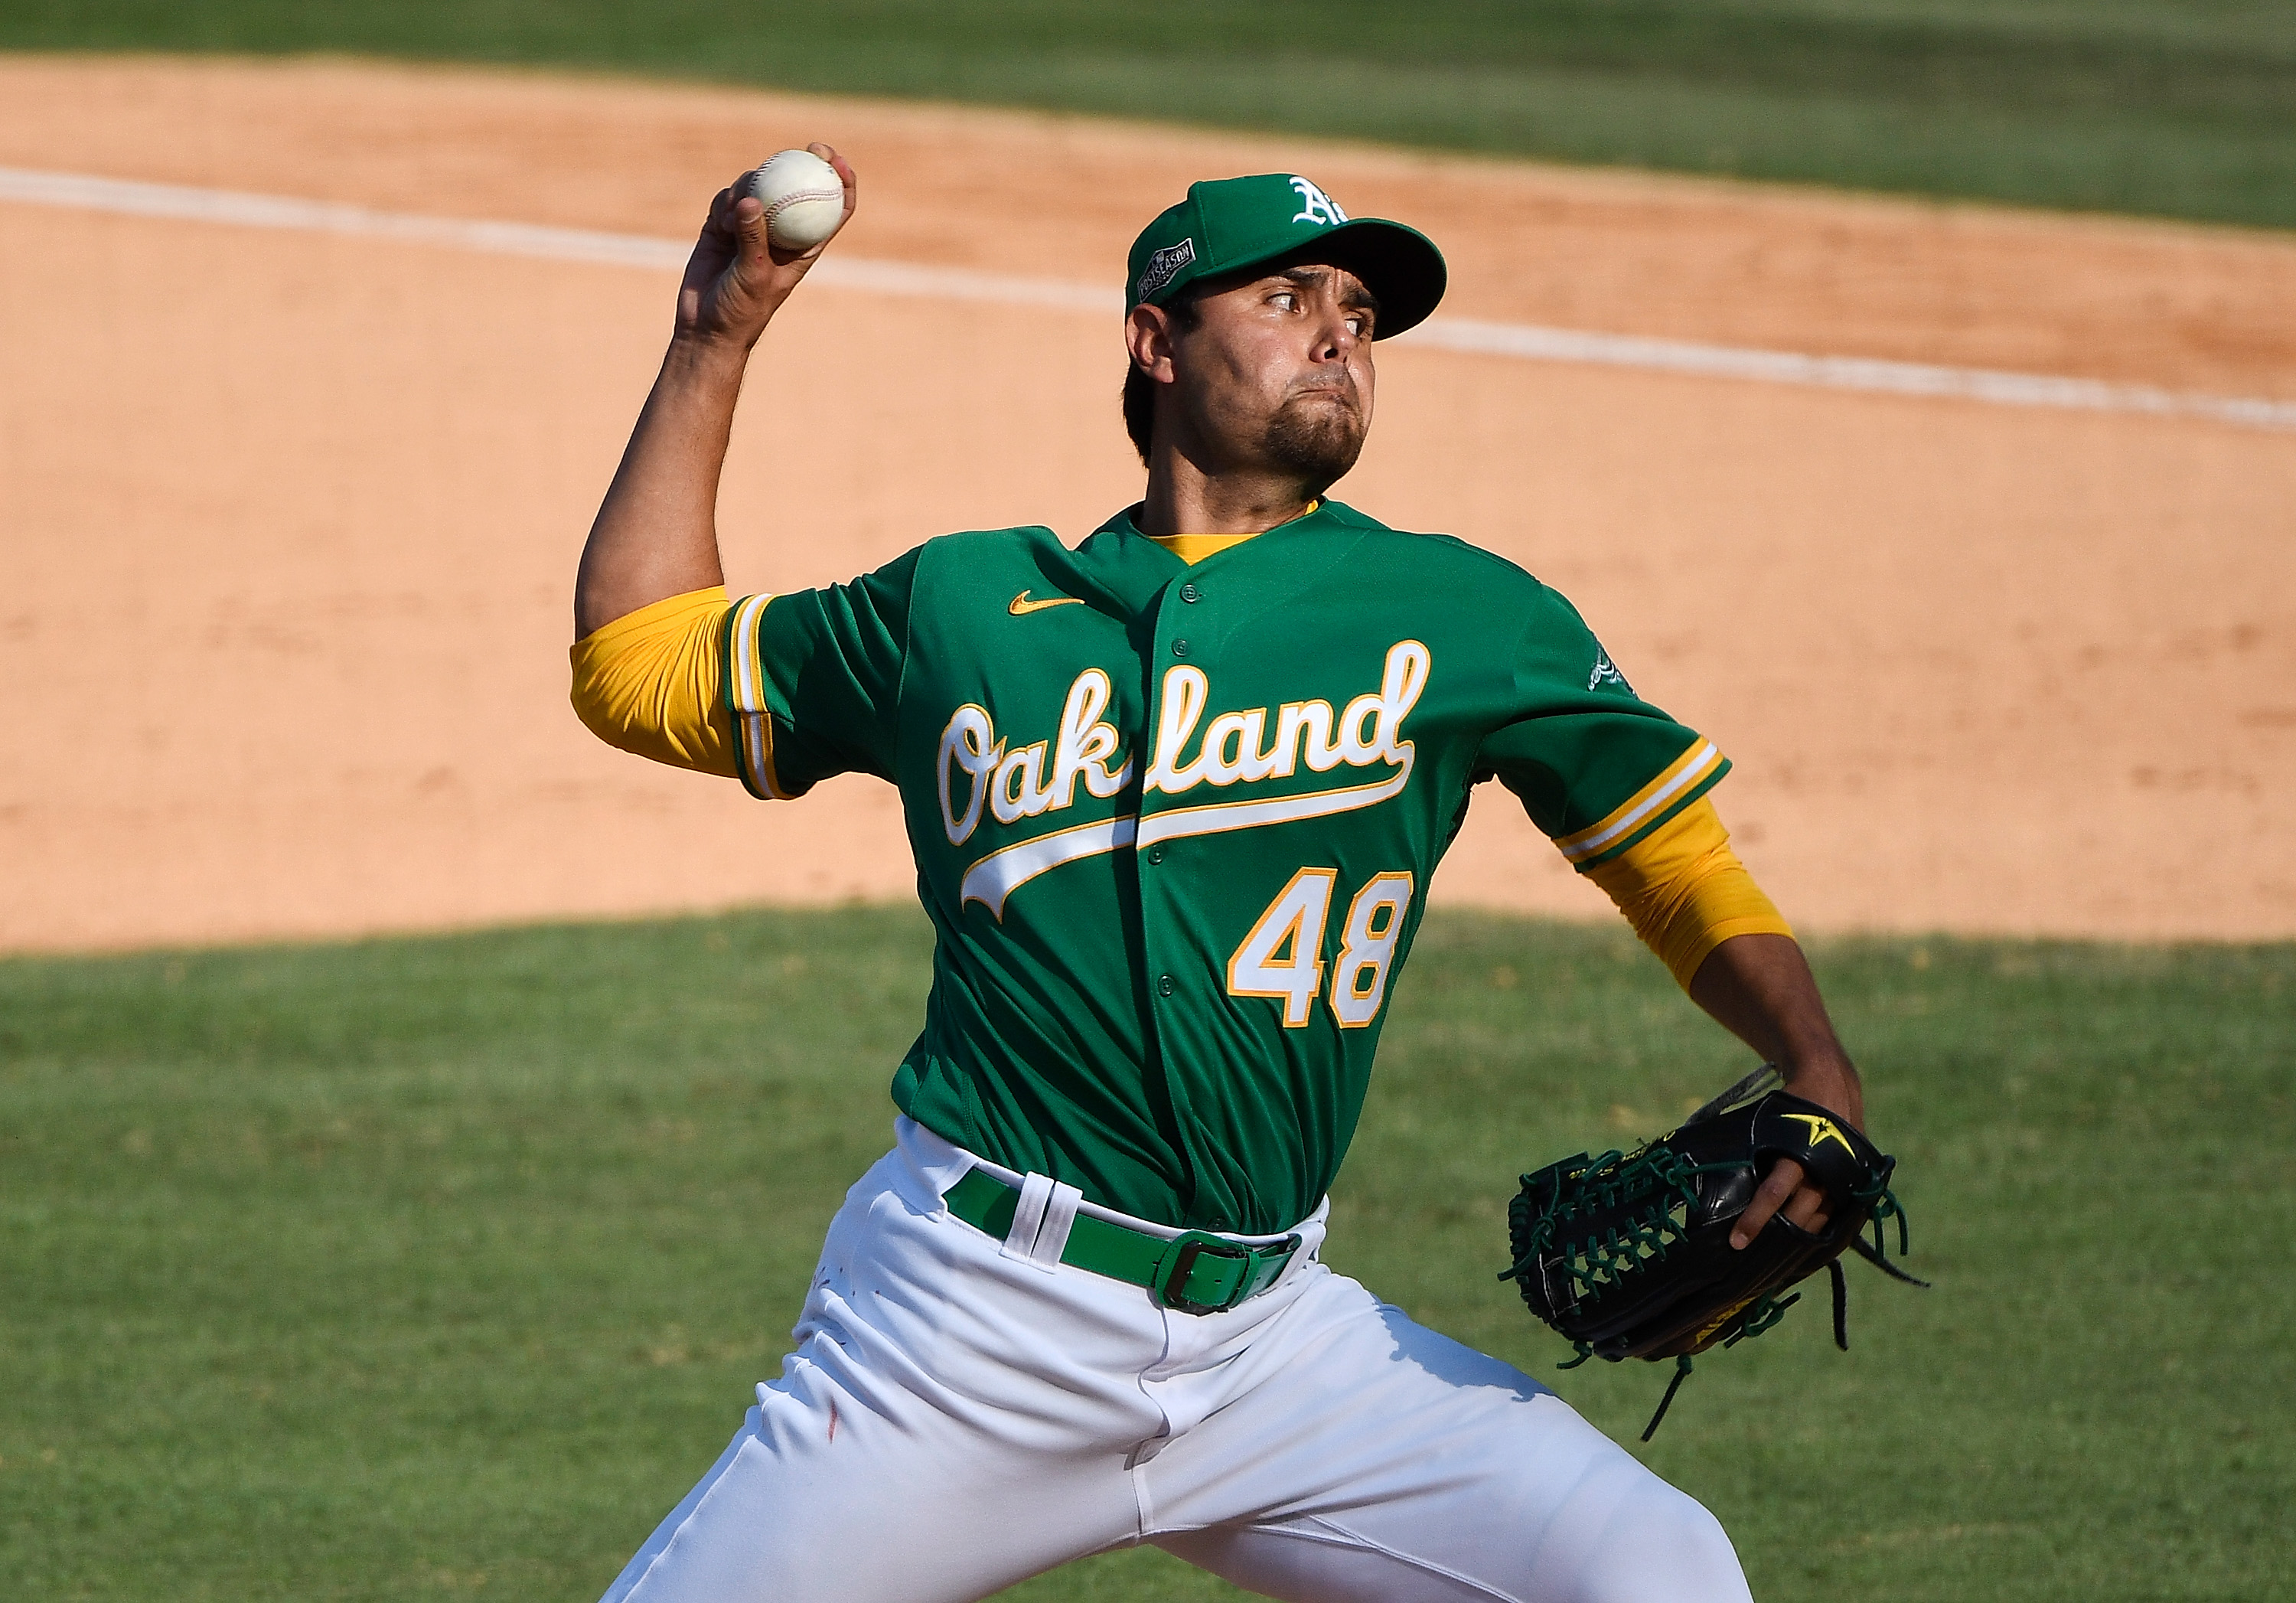 Oakland Athletics relief pitcher Joakim Soria pitches against the Houston Astros during the eighth inning in game two of the 2020 ALDS at Dodger Stadium.